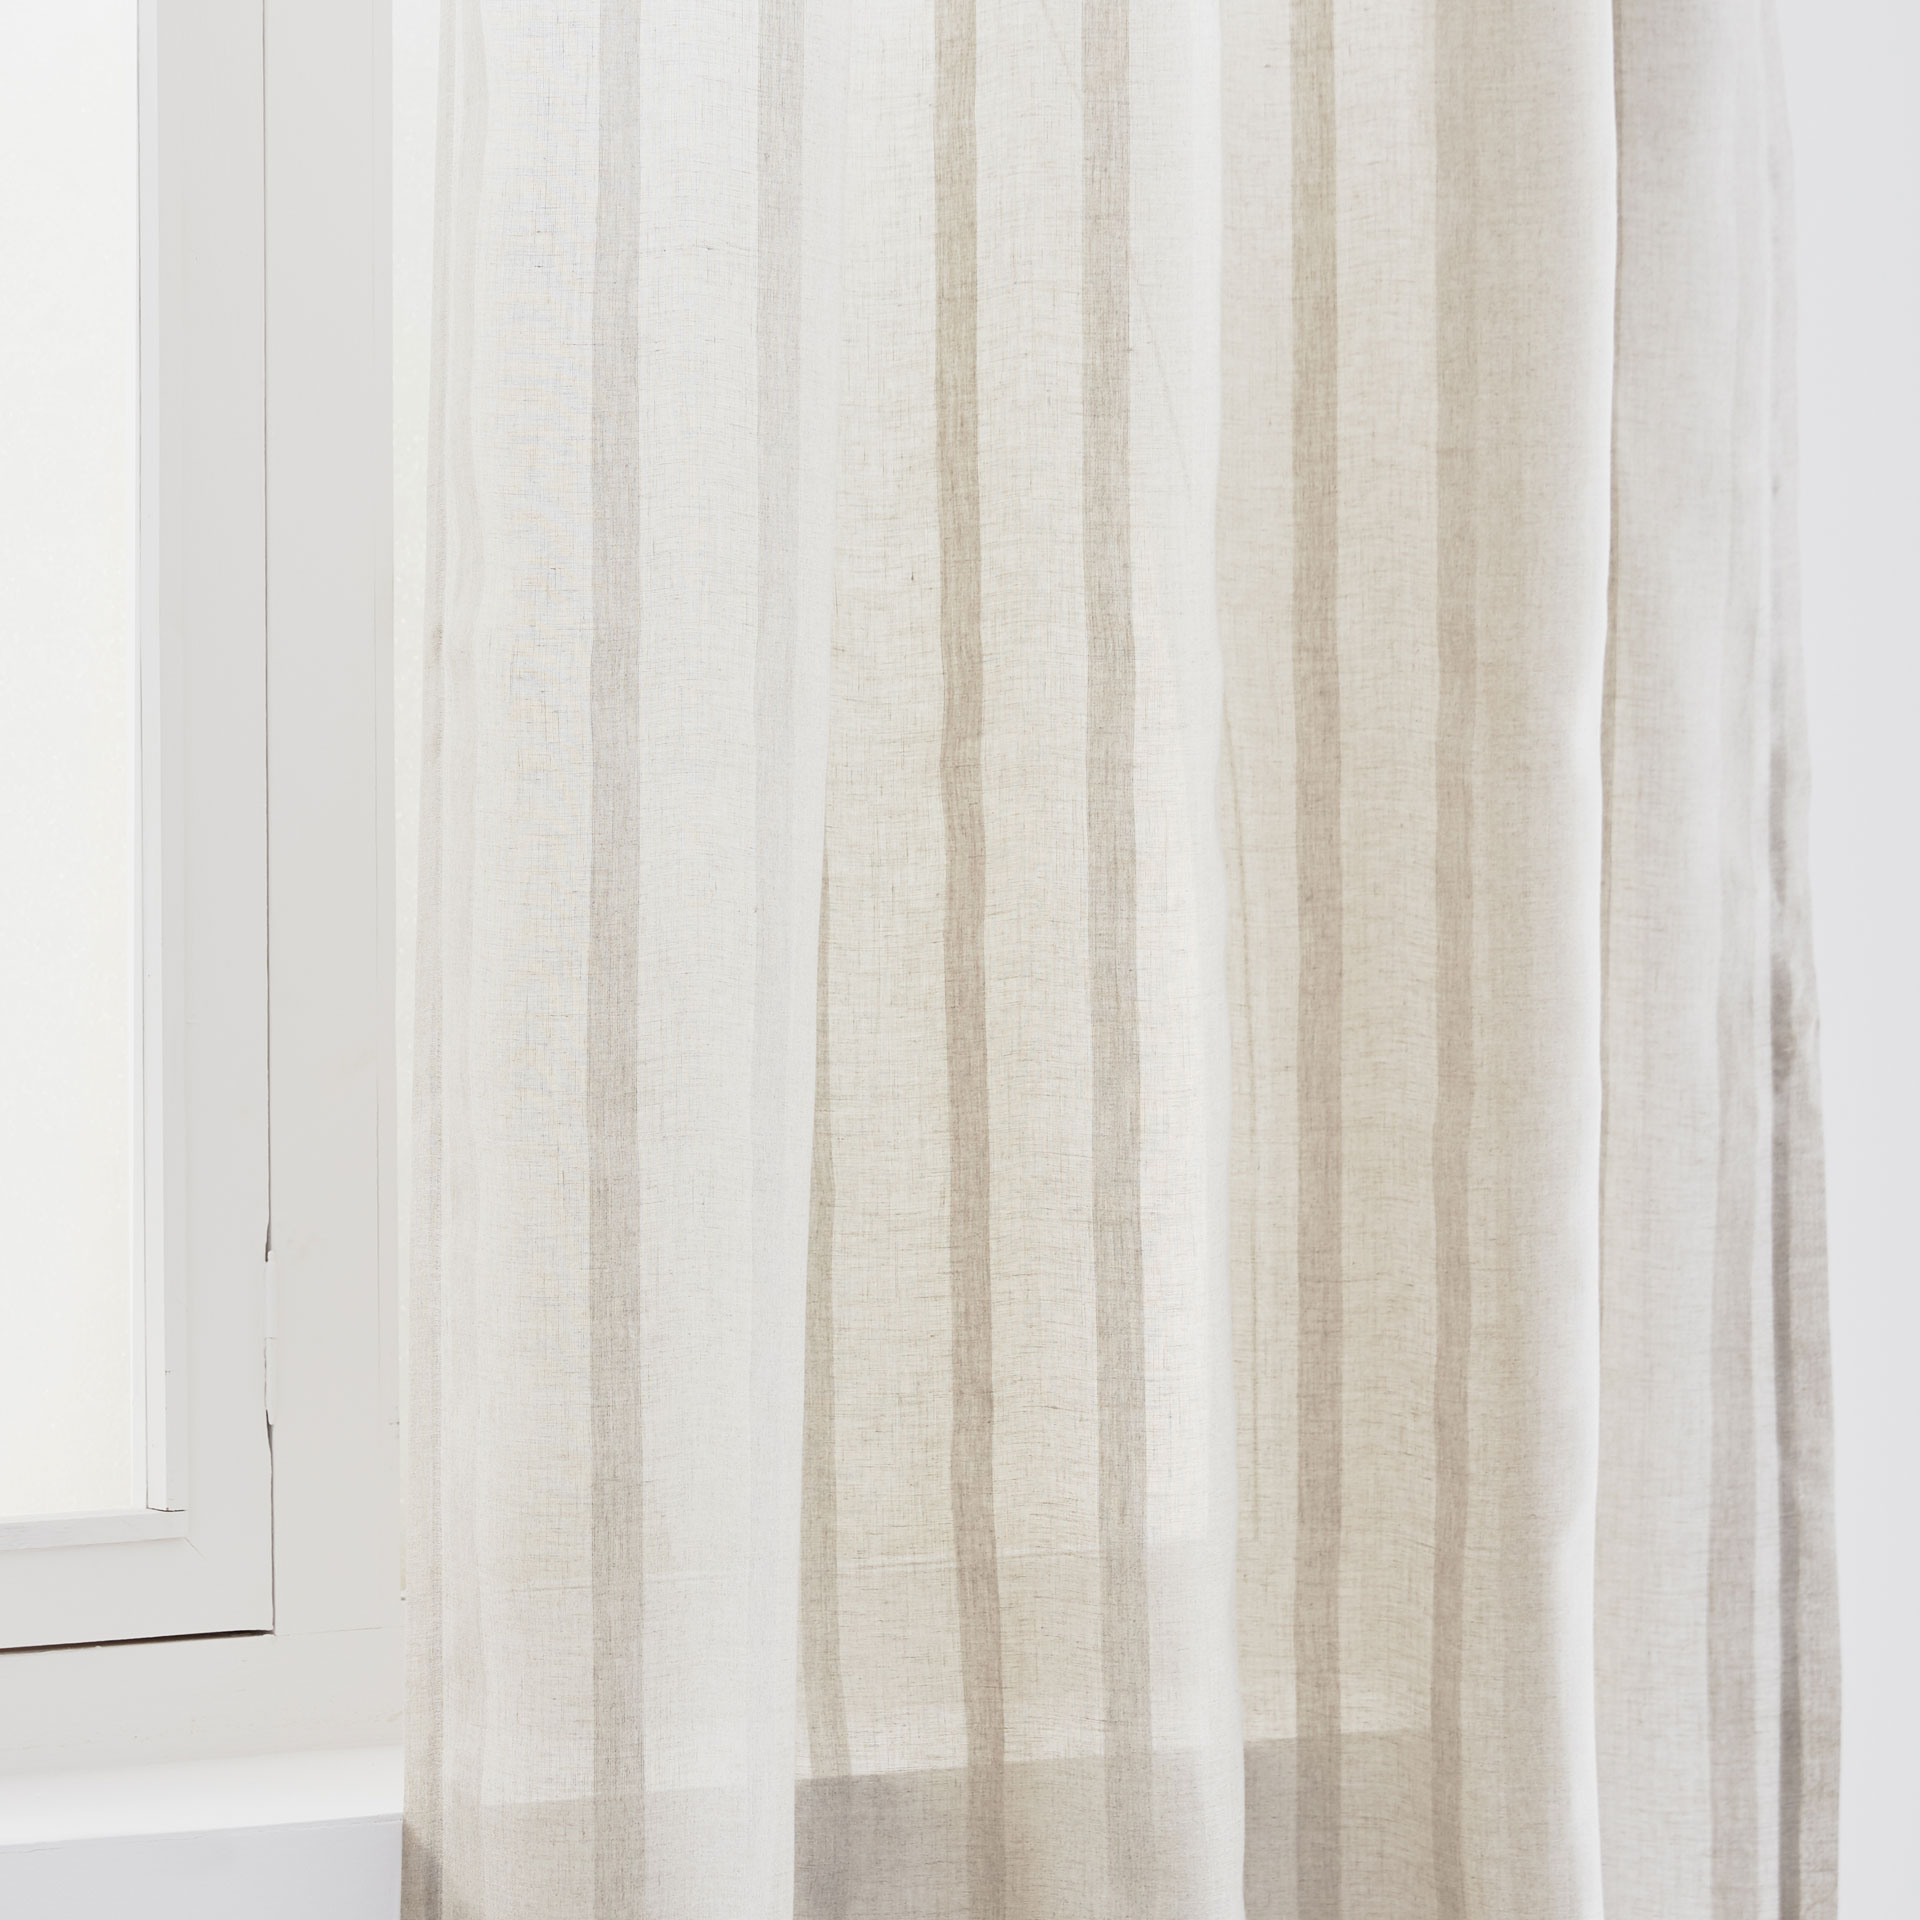 Zara home cortinas bao trendy zara home cortinas seda - Cortinas de ducha zara home ...